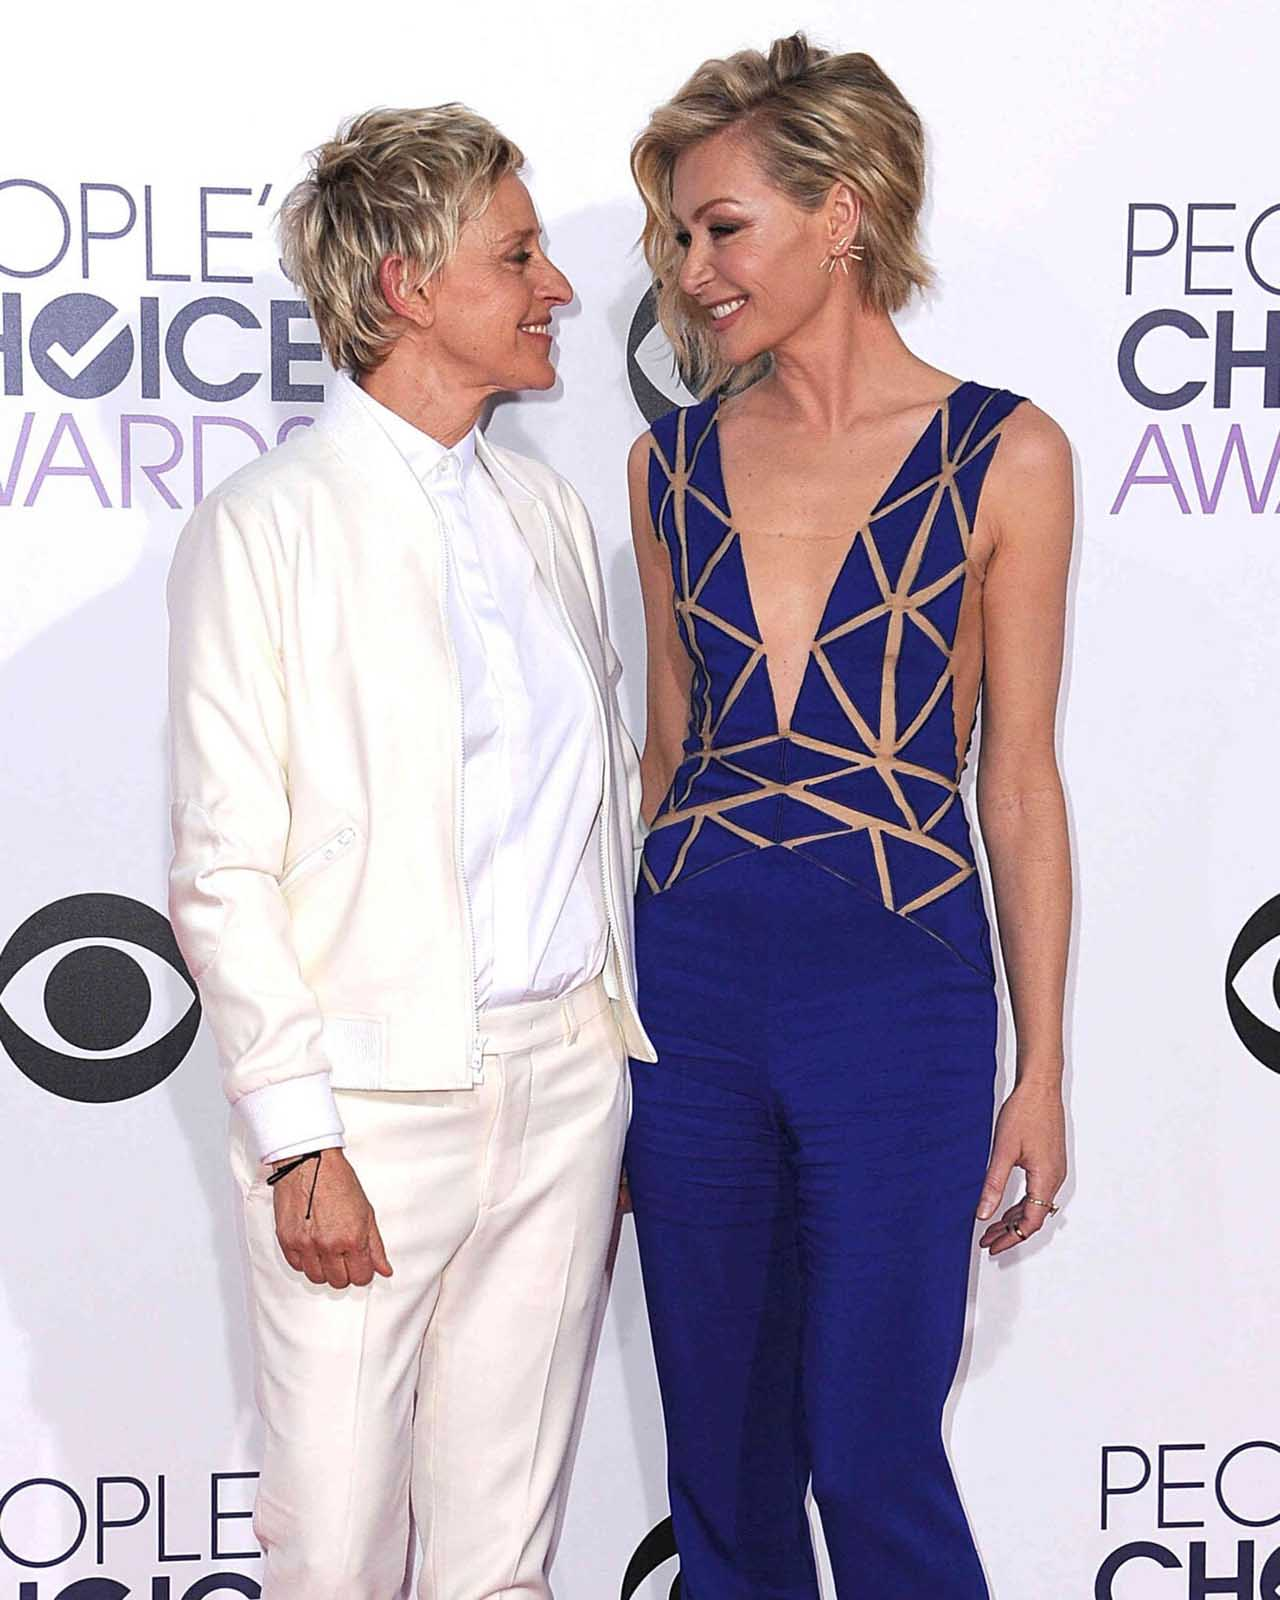 As all the accusations about Ellen DeGeneres being mean keep flying around, everyone is curious what her wife Portia thinks of all the allegations.